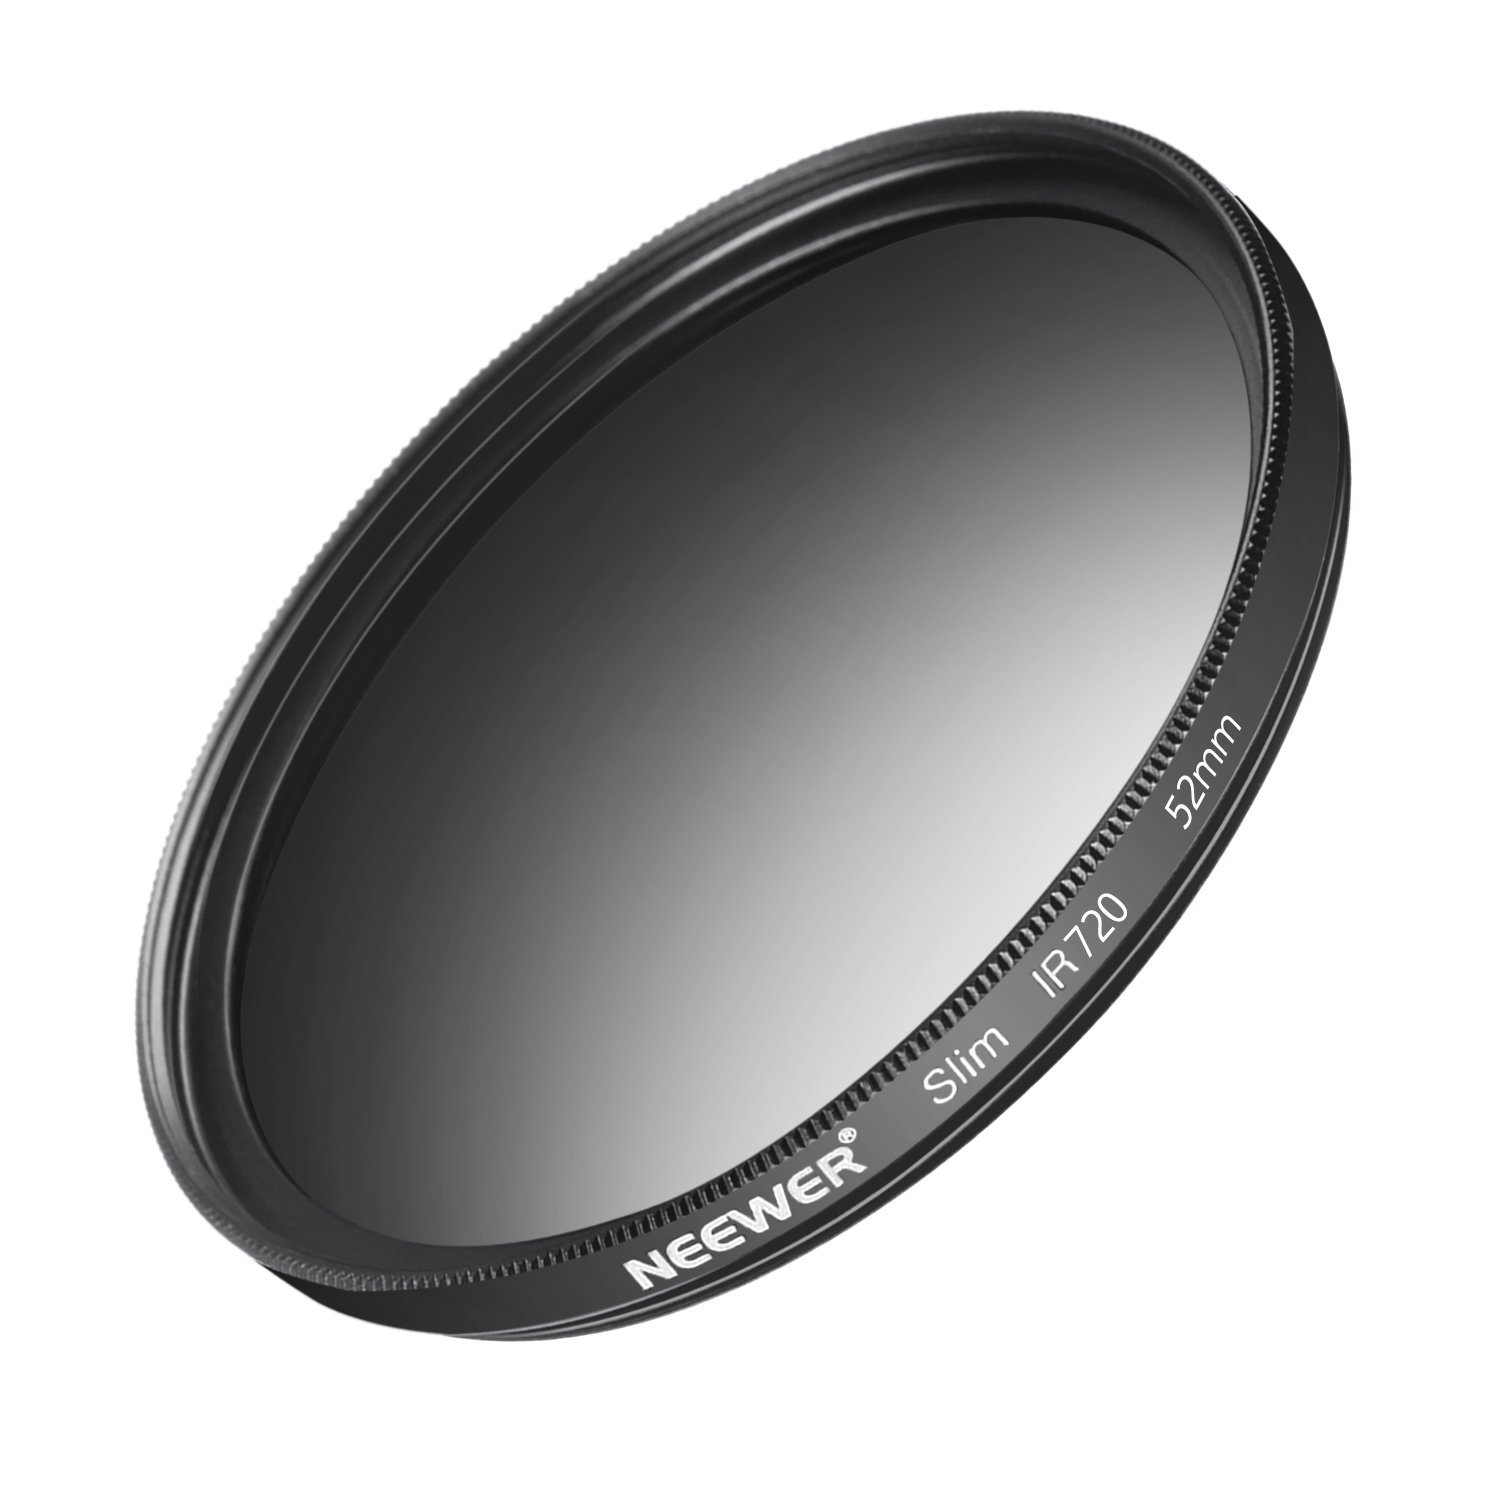 Neewer 52MM IR720 Infrared X-Ray Filter for Nikon D3300 D3200 D3100 D3000 D5300 D5200 D5100 D5000 D7000 D7100 DSLR Camera, Made of HD Optical Glass and Aluminum Alloy Frame by Neewer